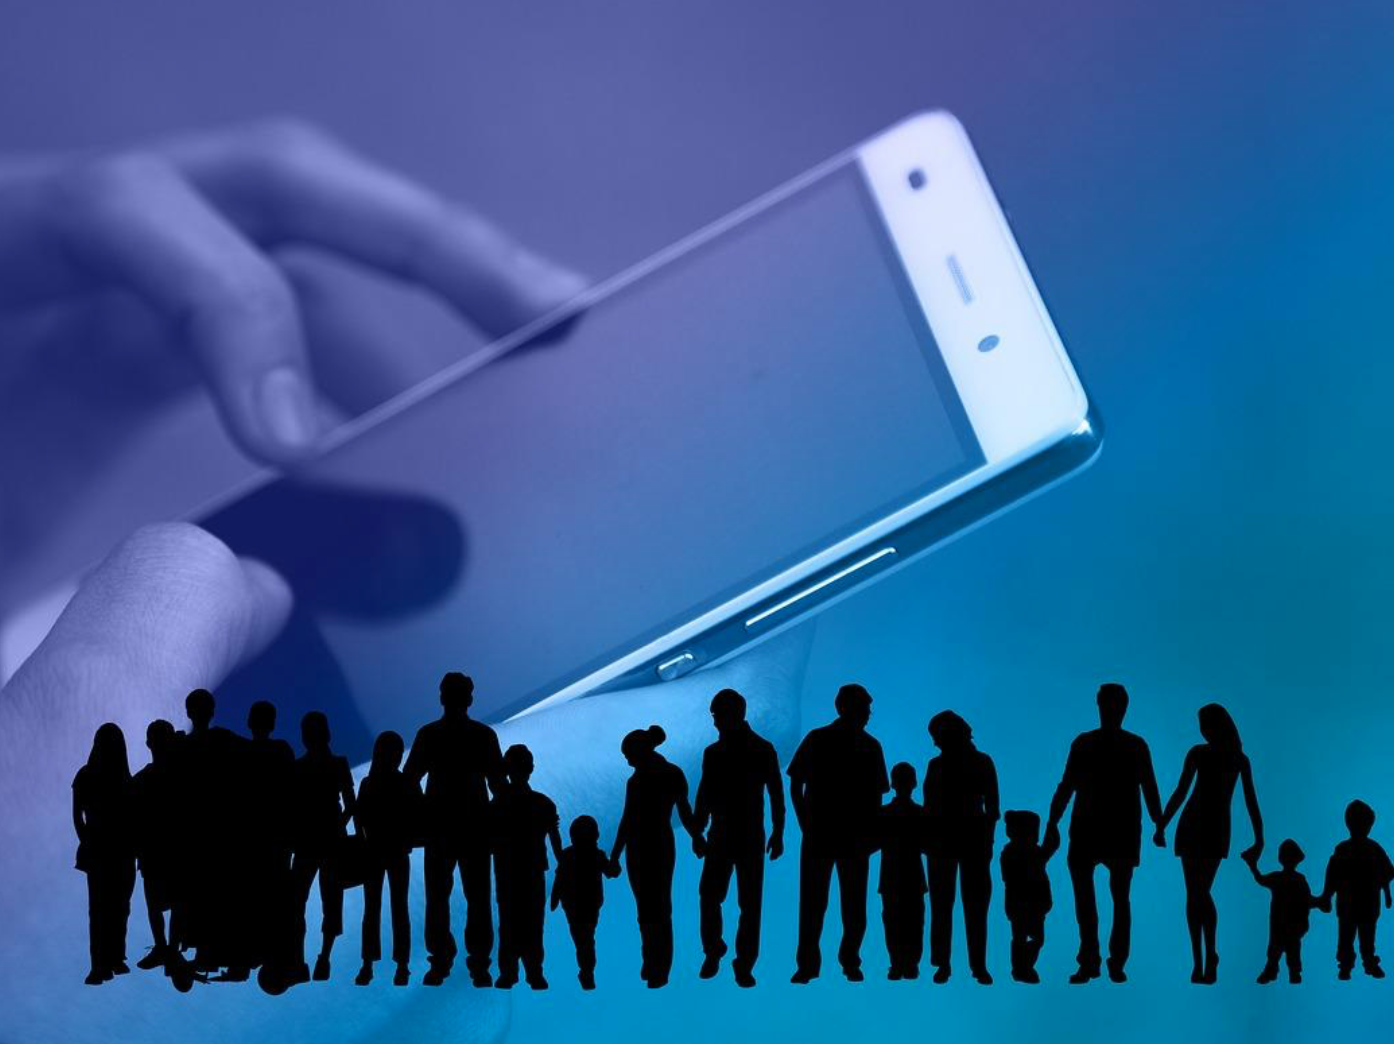 Silhouette of crowd against an oversized hand holding a smartphone; image by Geralt; via Pixabay.com.